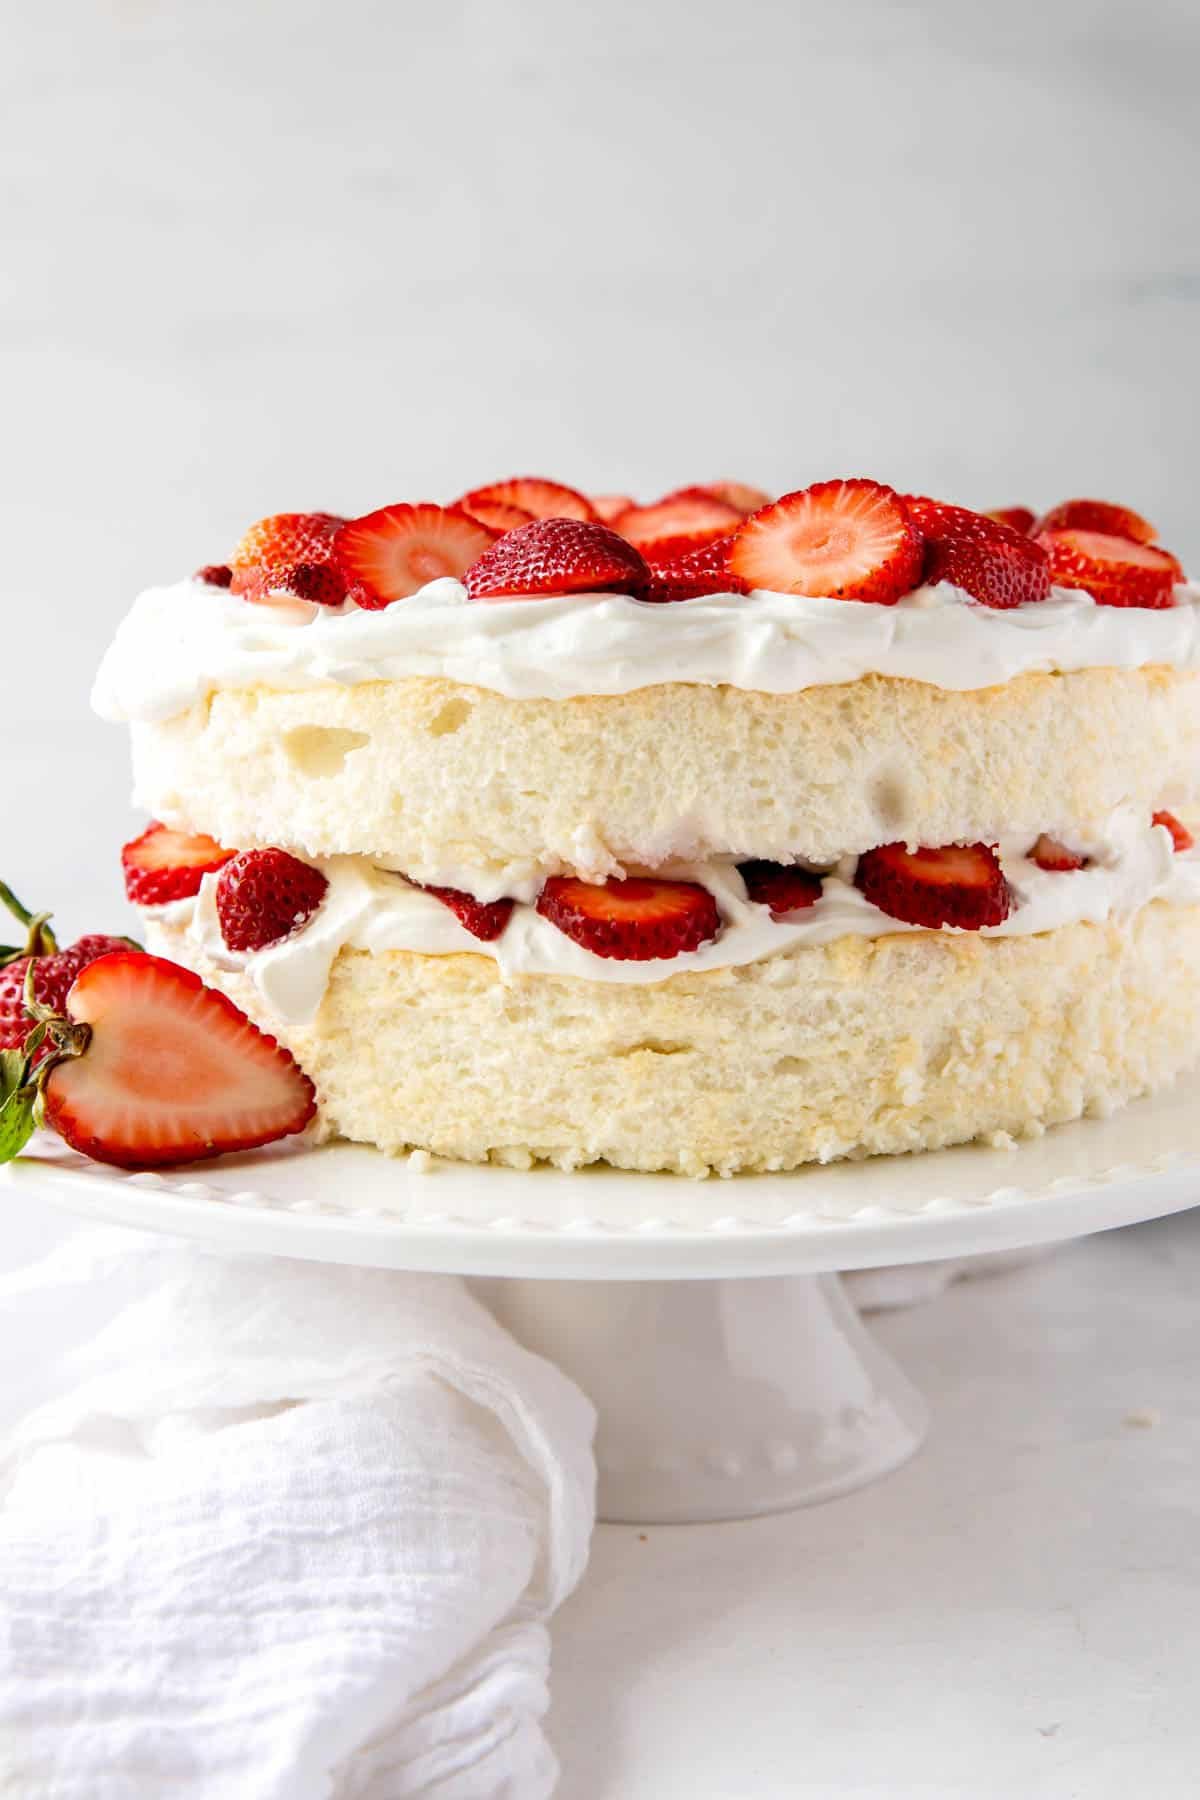 Angel food cake with layers of whipped cream and strawberries